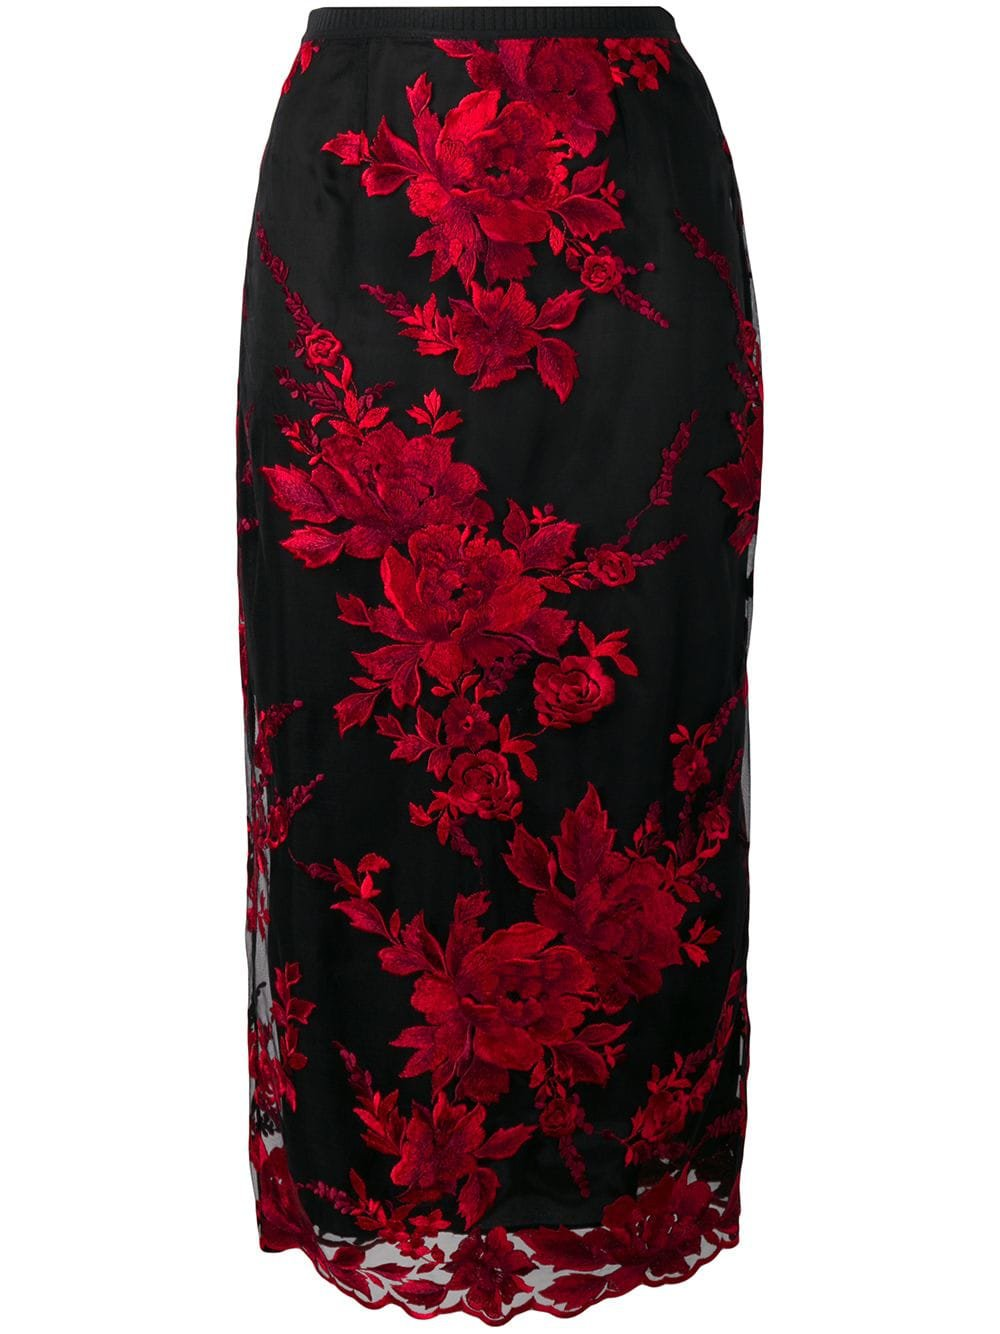 Antonio Marras floral embroidered pencil skirt £754 - Shop Online SS19. Same Day Delivery in London